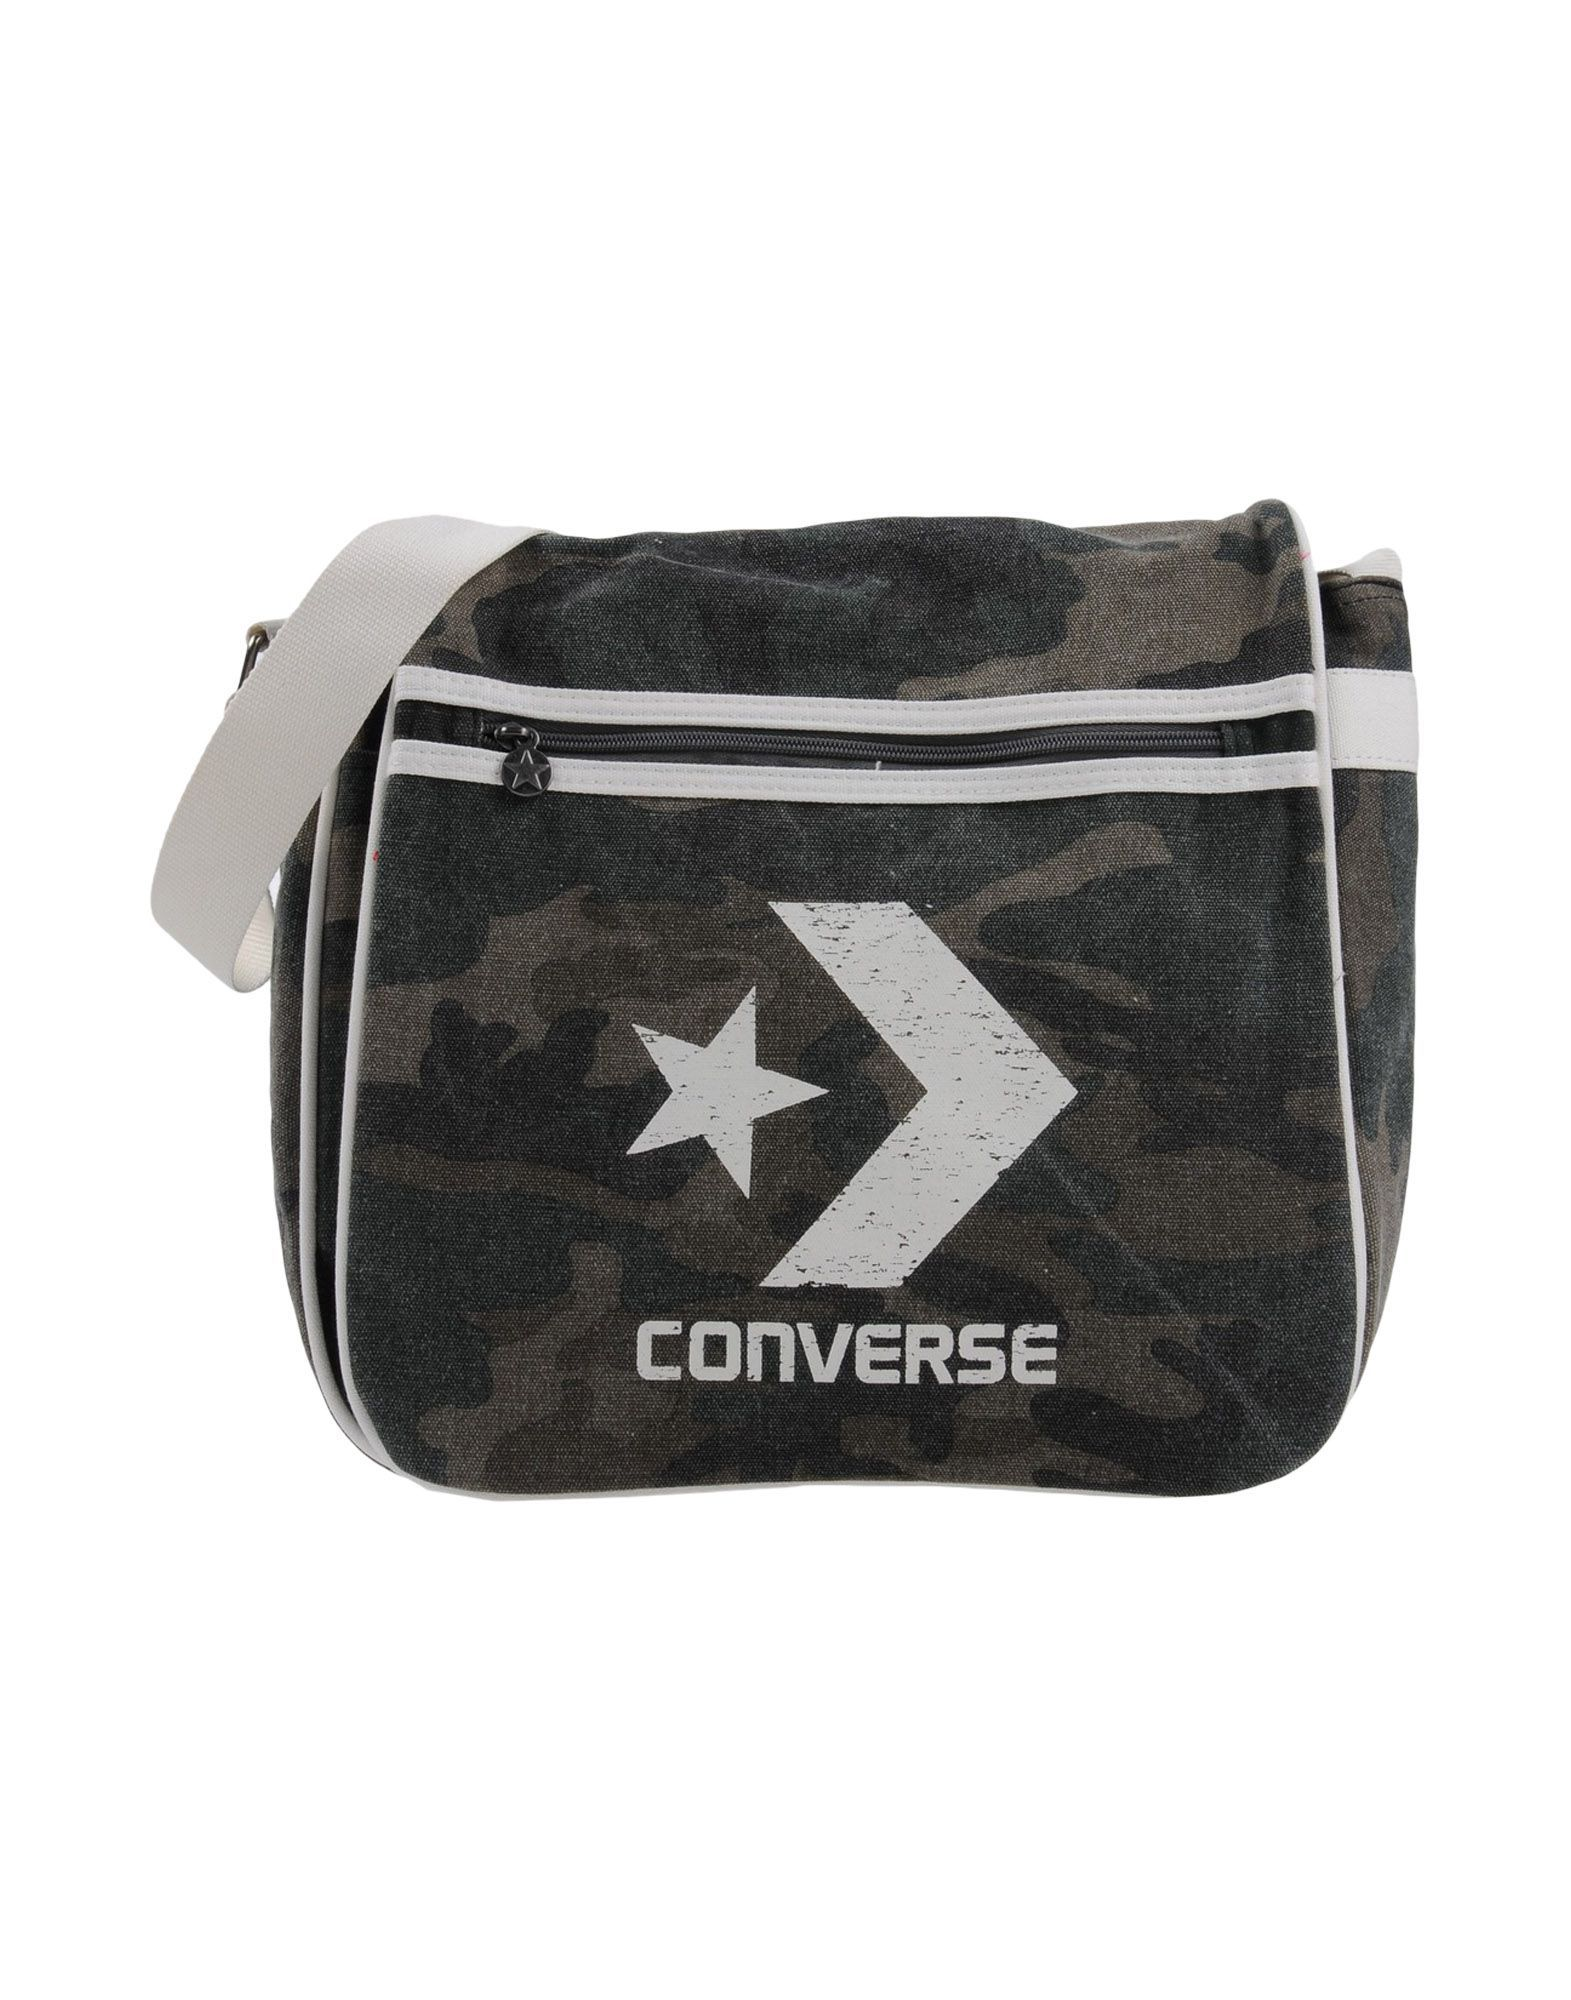 da87d34f7419 CONVERSE HANDBAGS.  converse  bags  shoulder bags  canvas  cotton ...